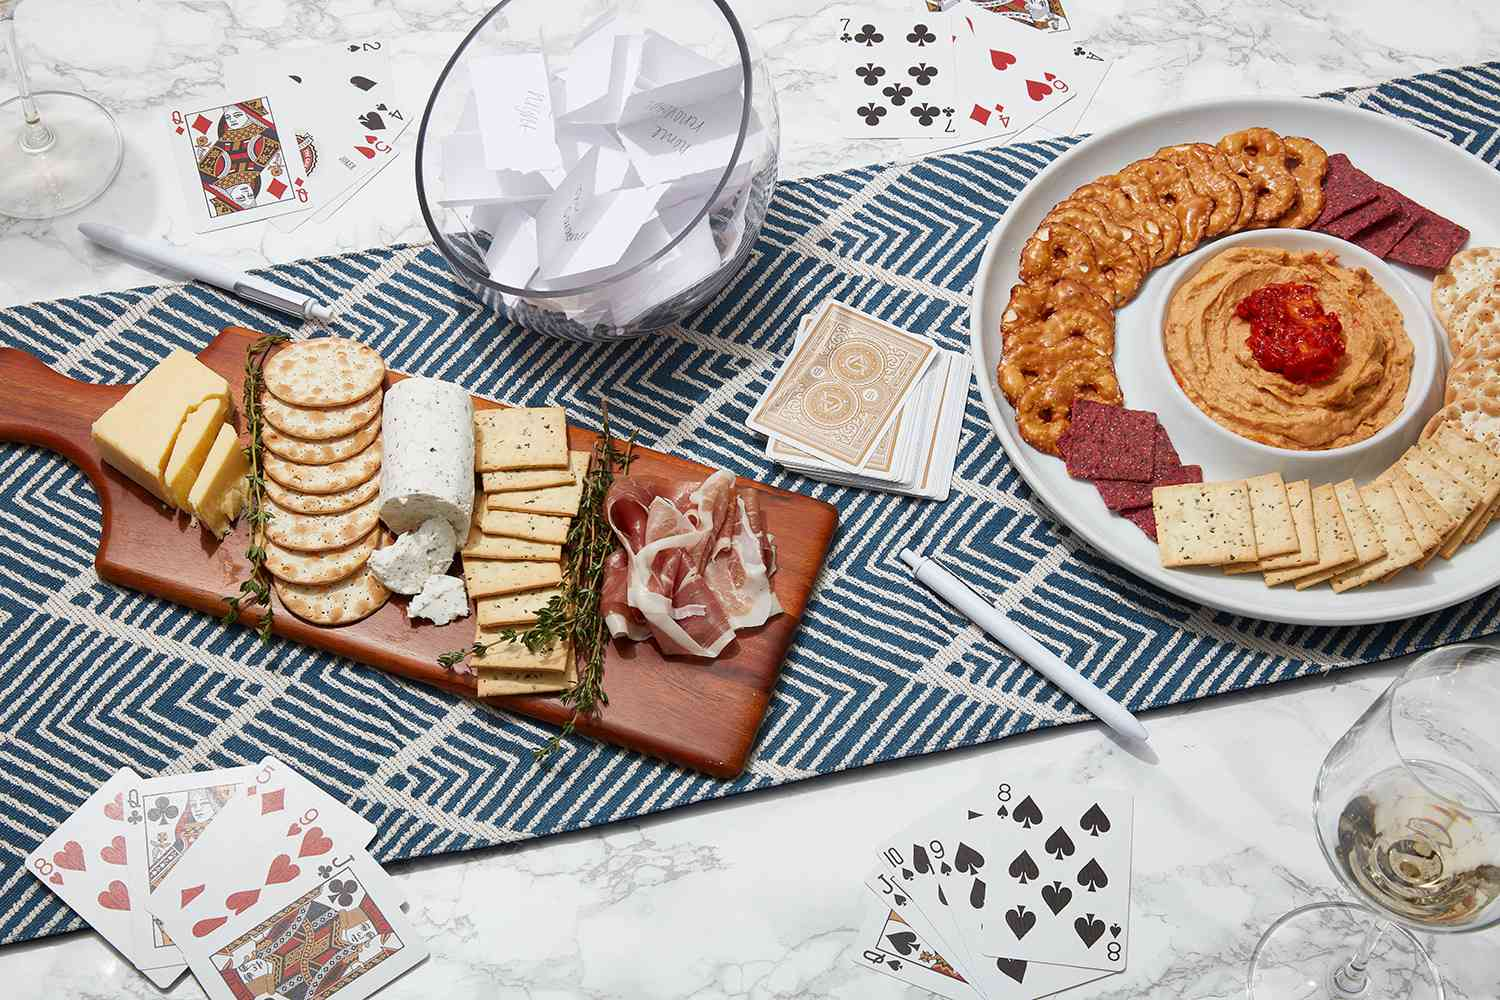 conversation cards, playing cards, and snacks